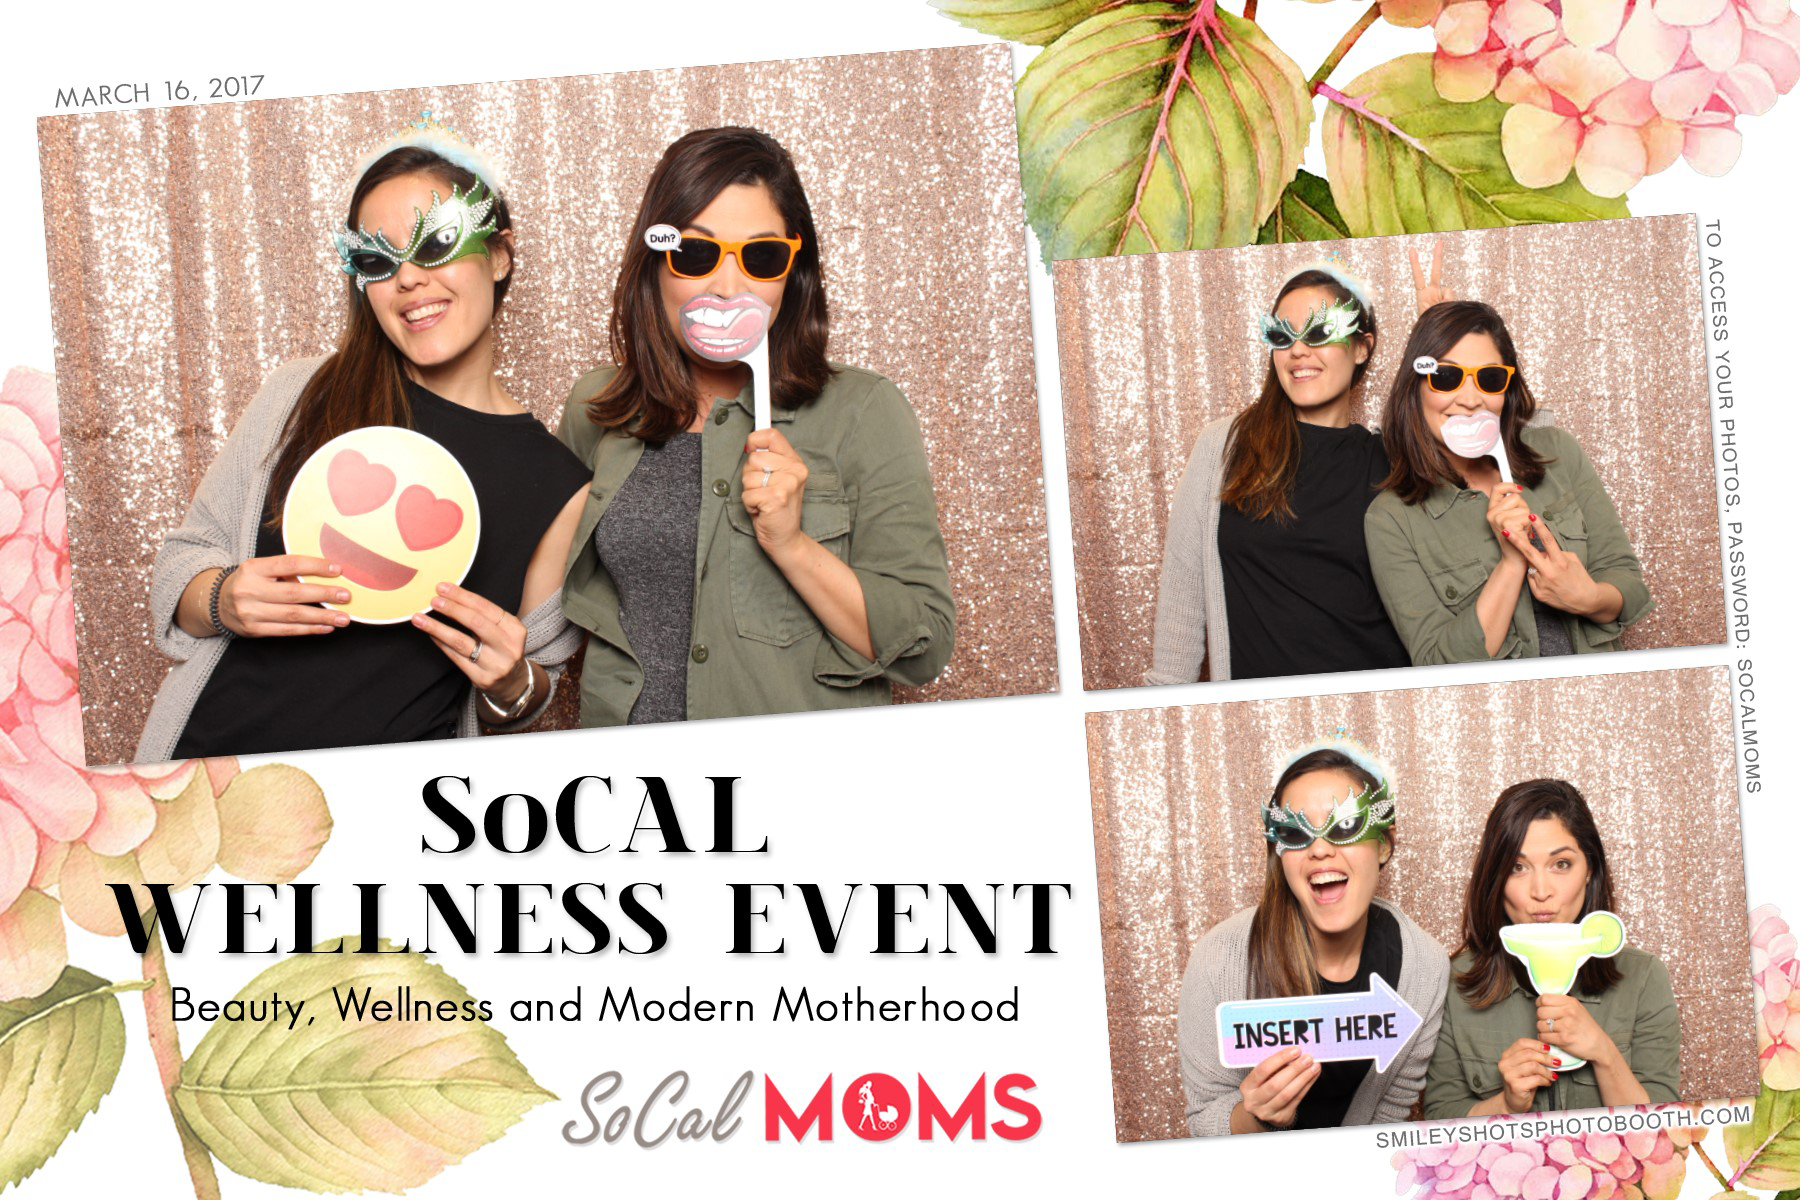 Socal Wellness Event Socal Moms Smiley Shots Photo Booth Photobooth (40).png